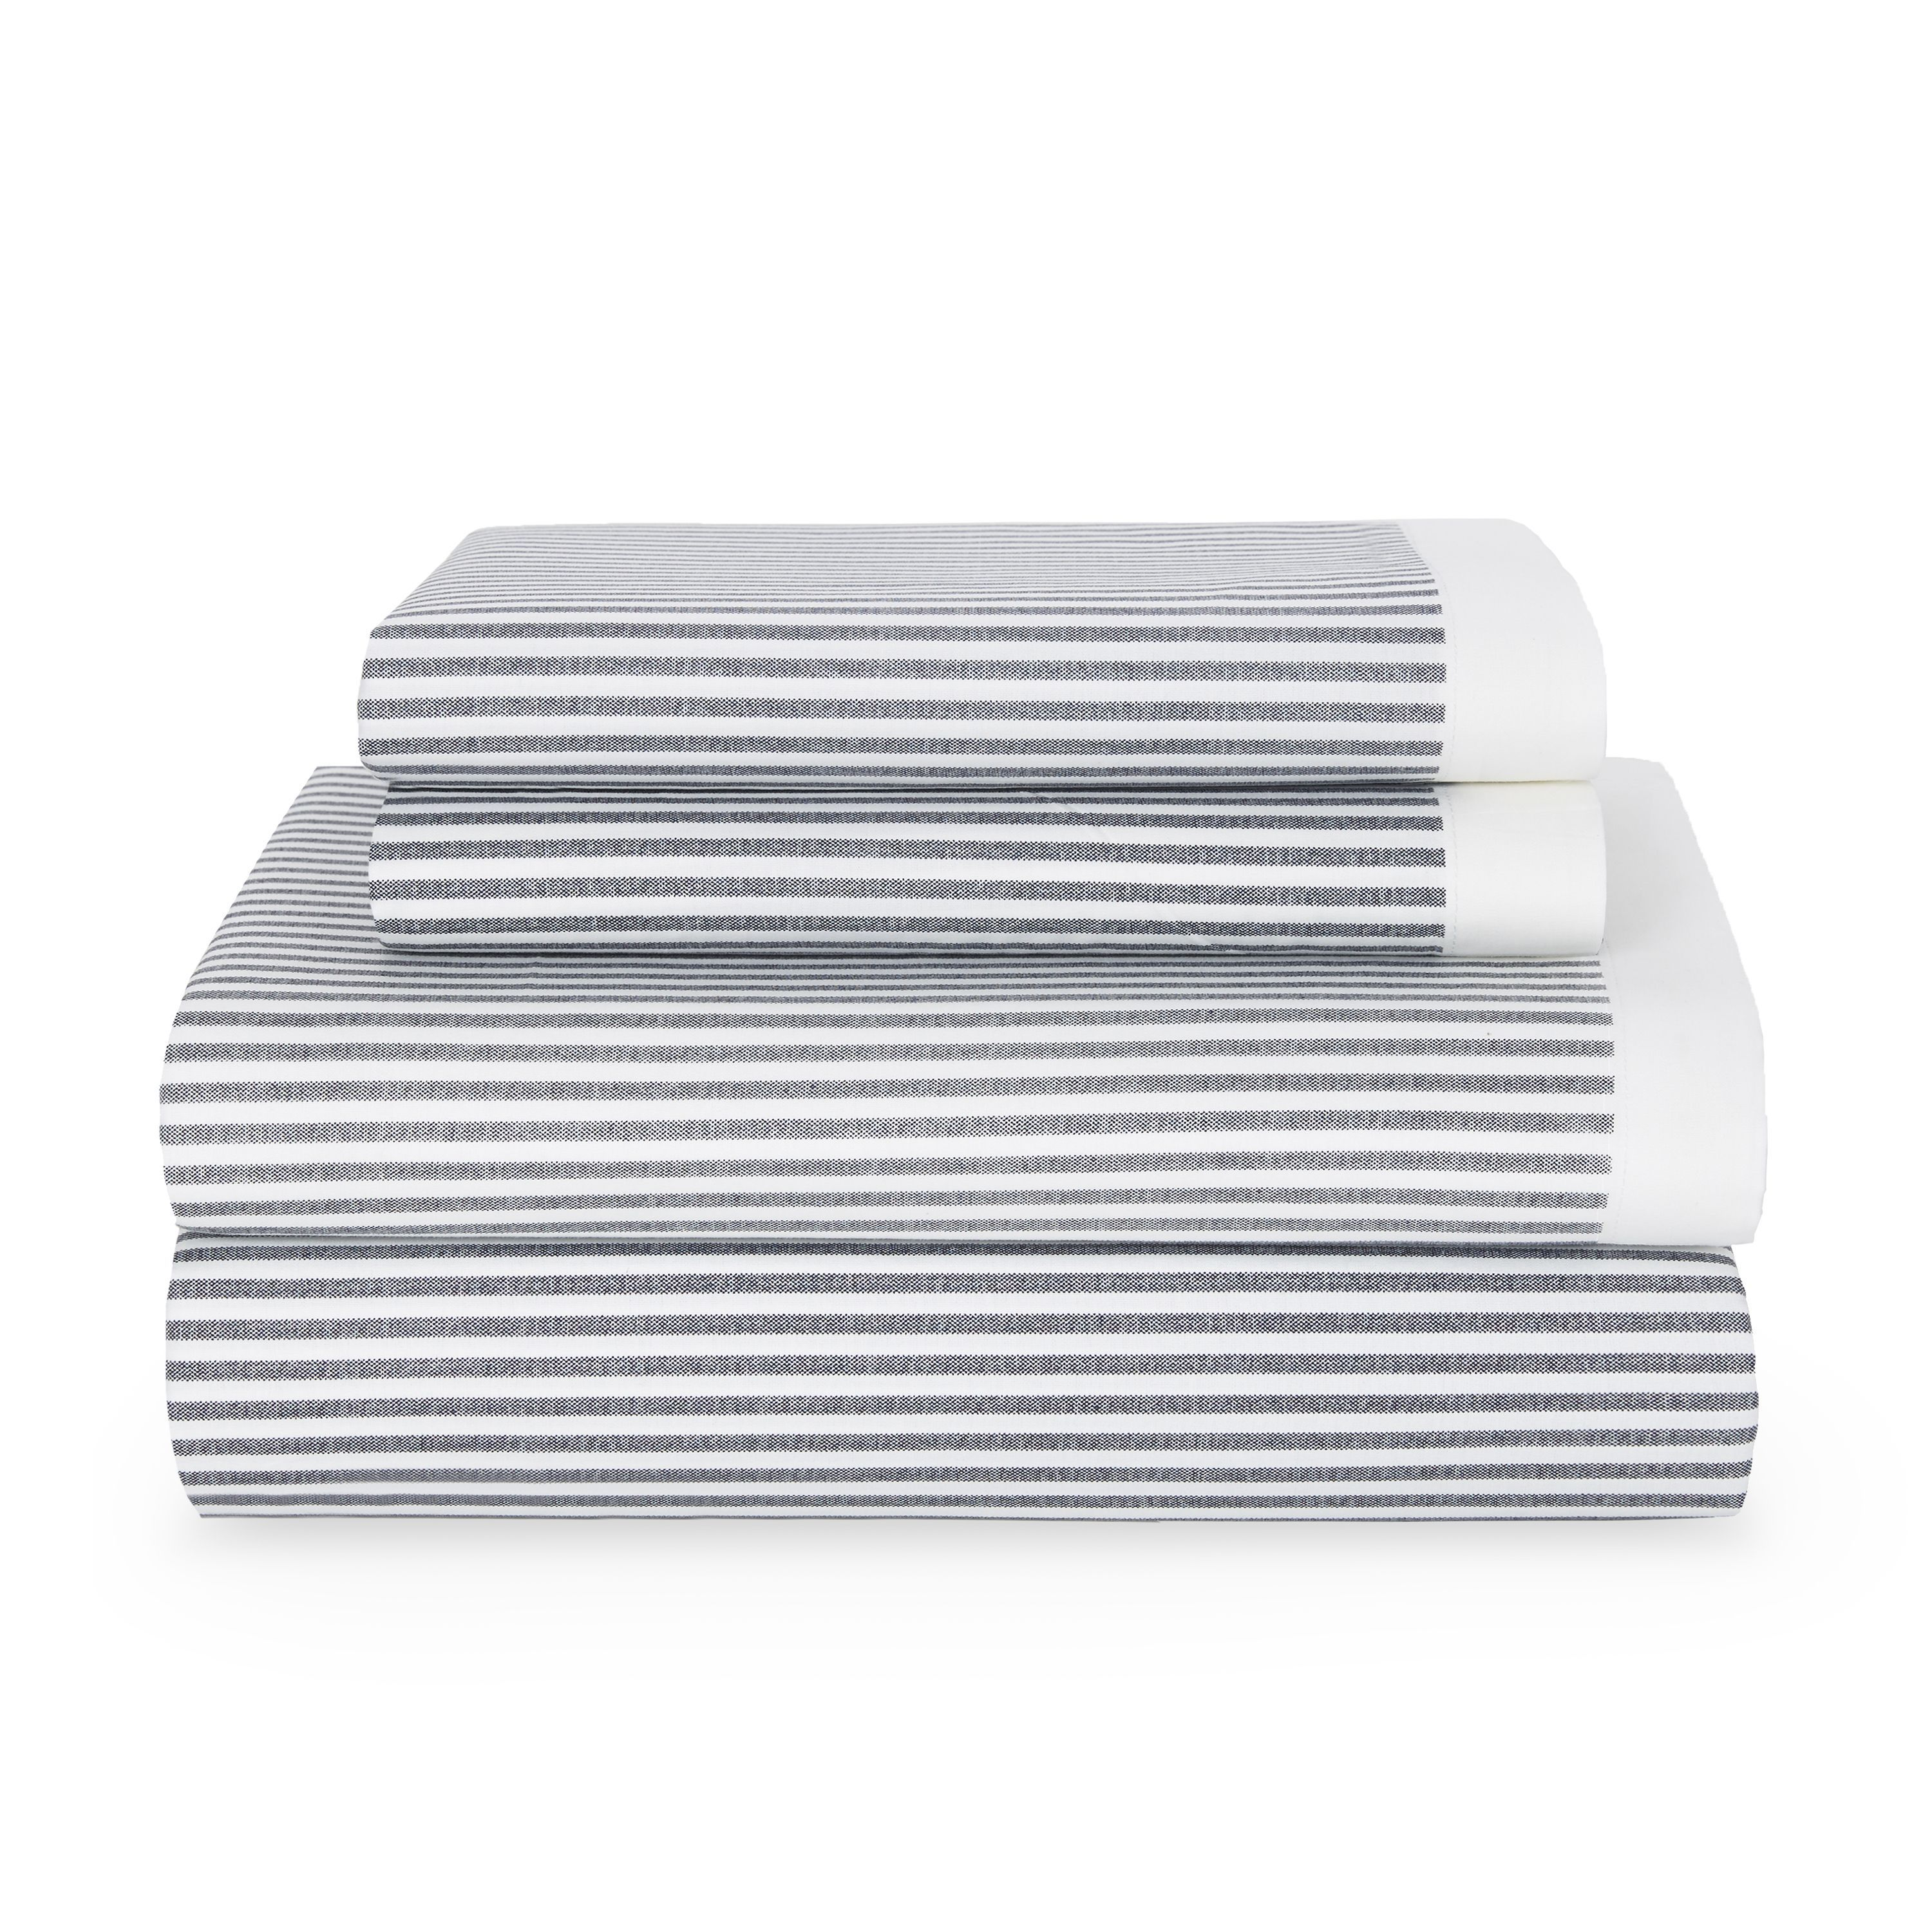 Wrap yourself up in these grey and white striped sheets by Tommy